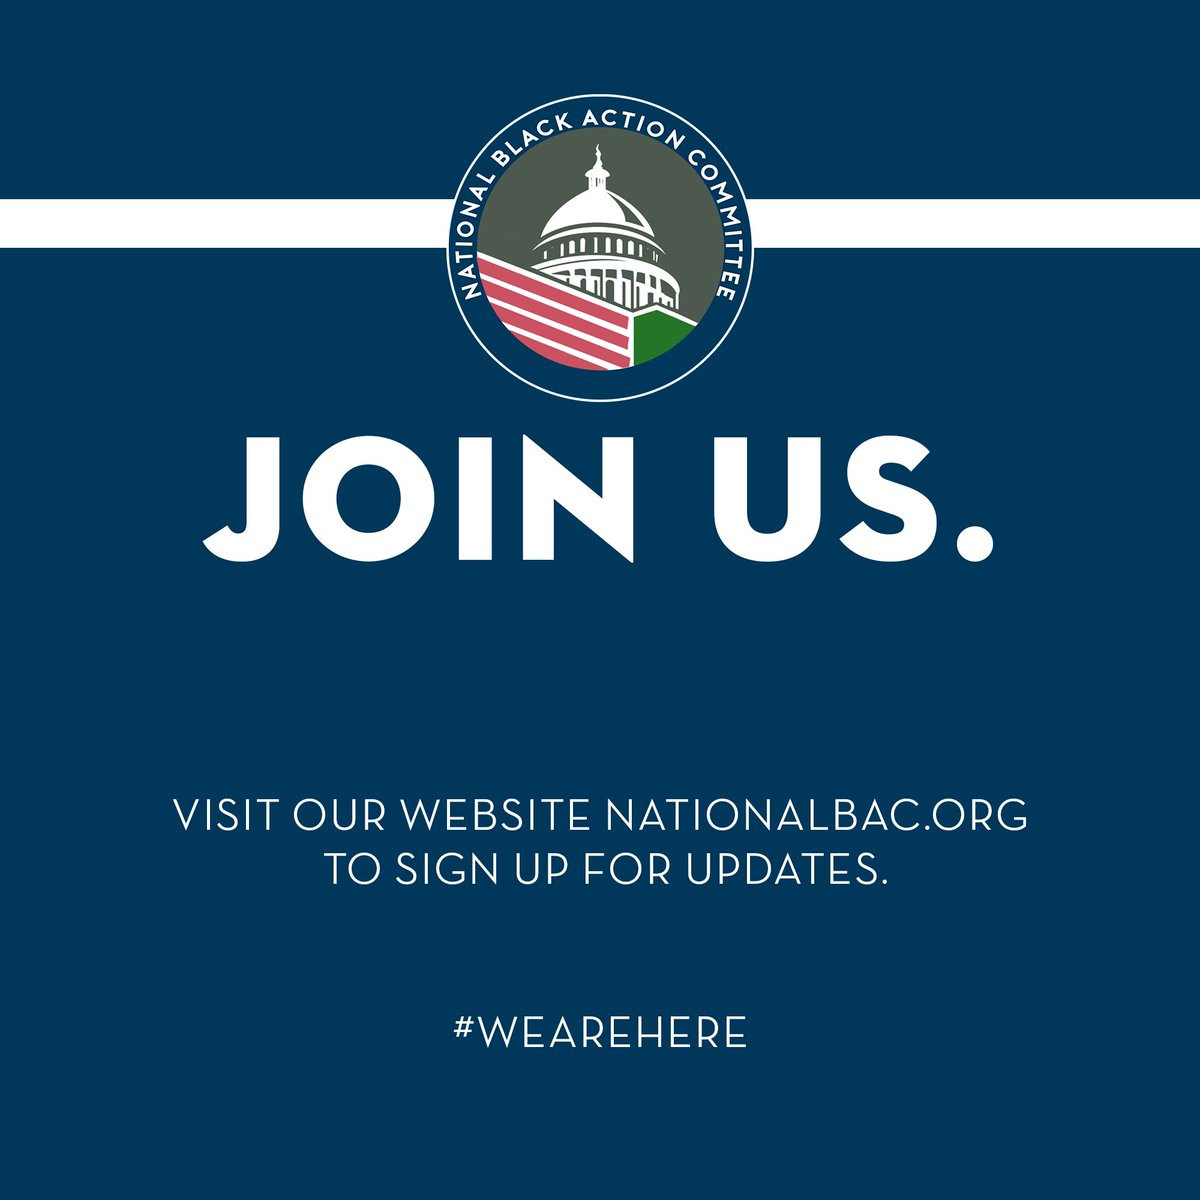 Join us! Visit our website:  http:// nationalbac.org  &nbsp;   to receive updates from the National Black Action. Membership drive starts soon! #NBAC #NationalBAC #WeAreHere <br>http://pic.twitter.com/Q1ziiOm2A7